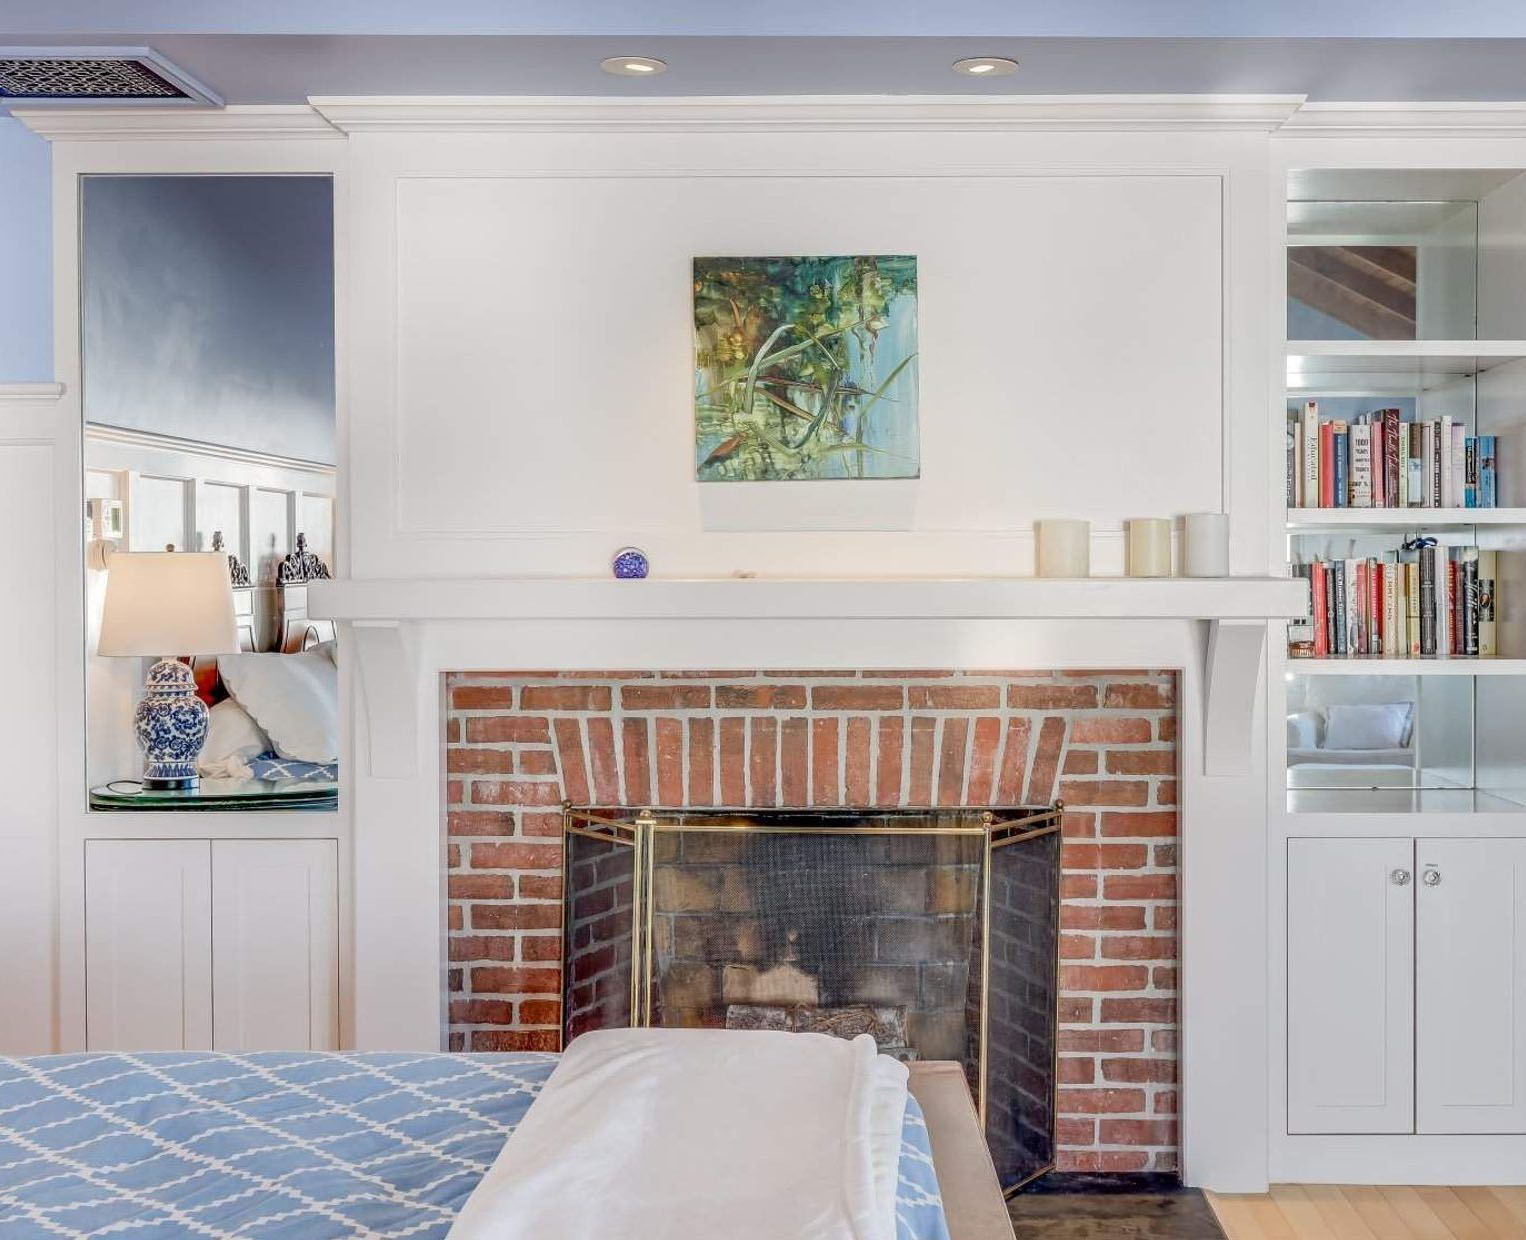 Classic red brick wood burning bedroom fireplace with a wood surround and built ins painted white.